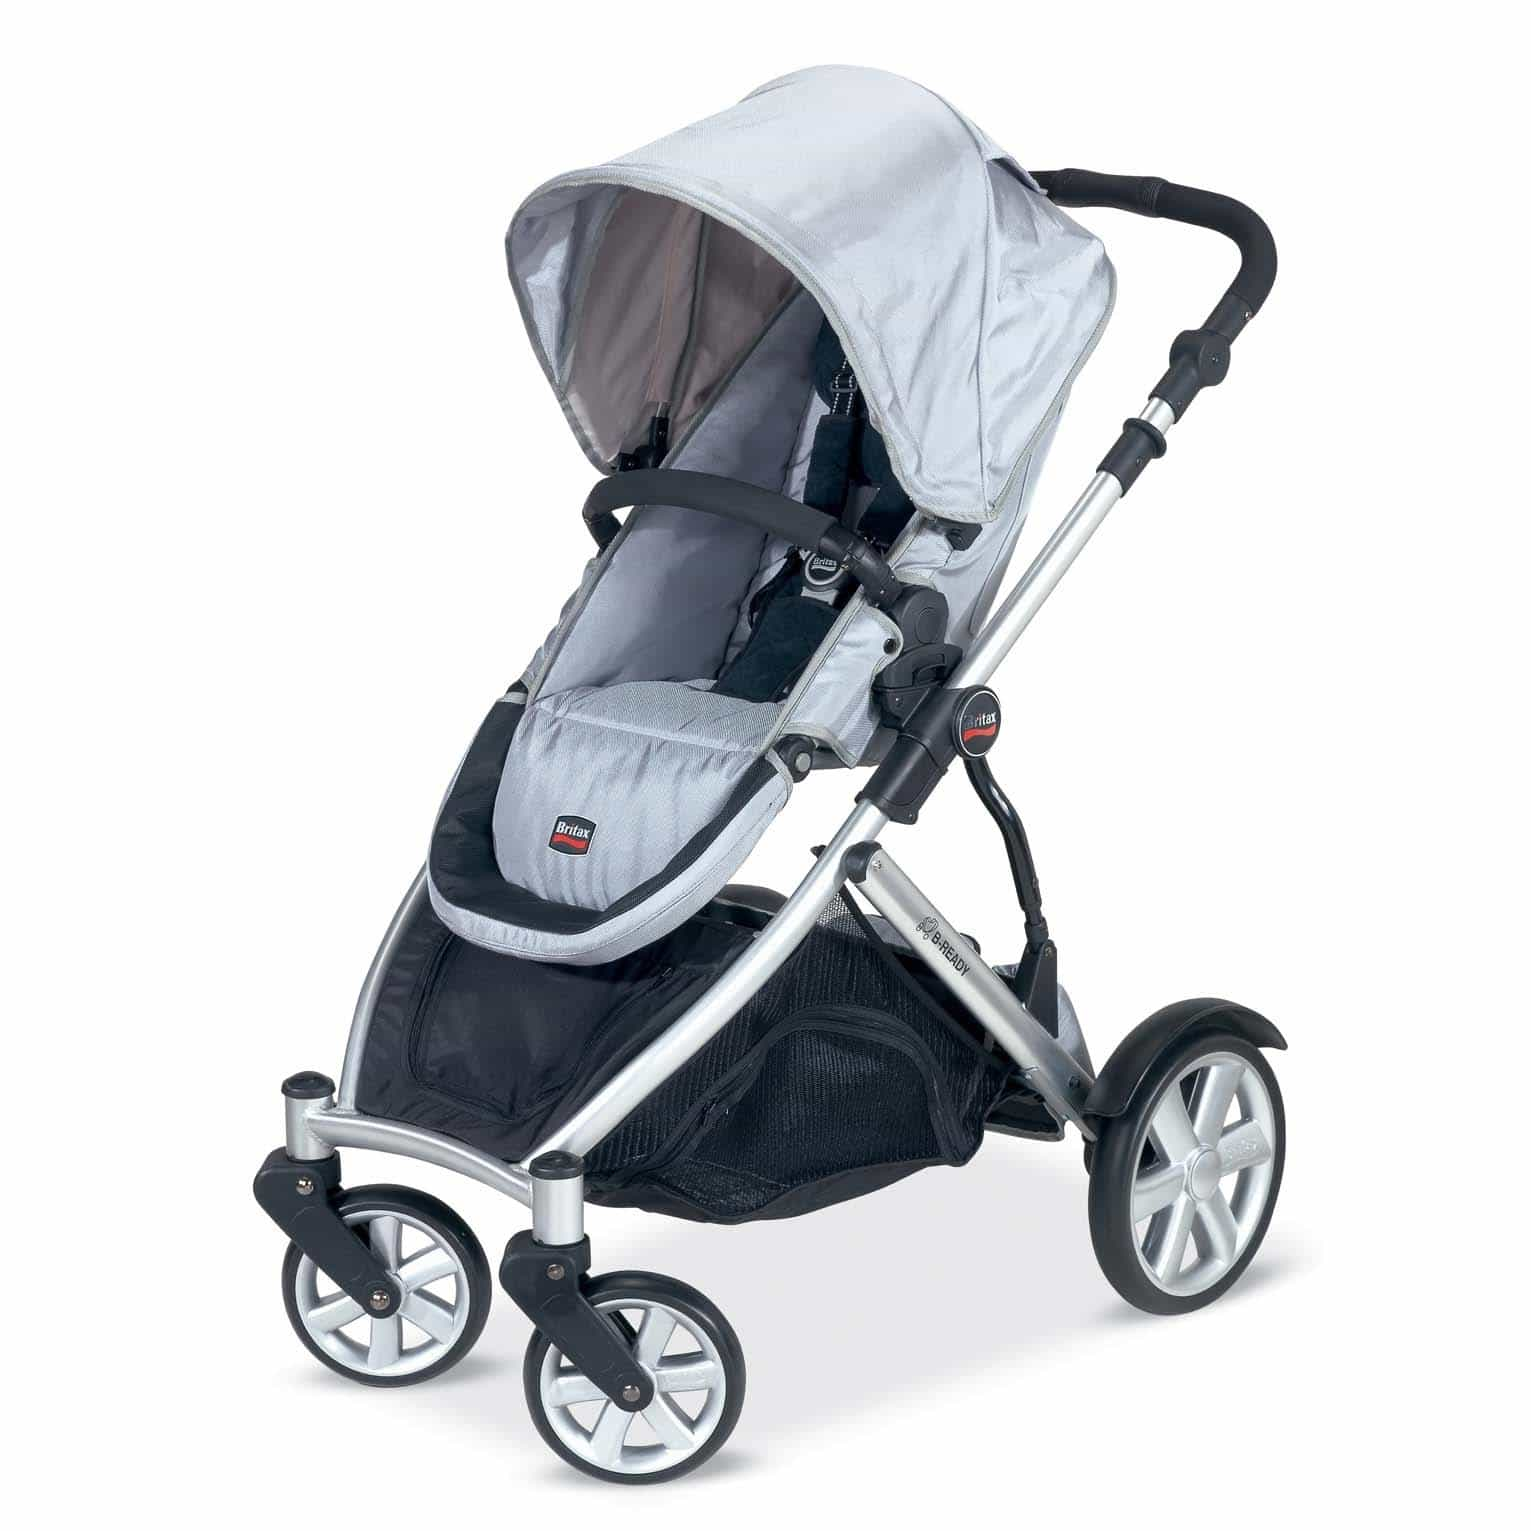 Car Seat For Double Stroller My New Stroller Love The Britax B Ready I Am The Maven®